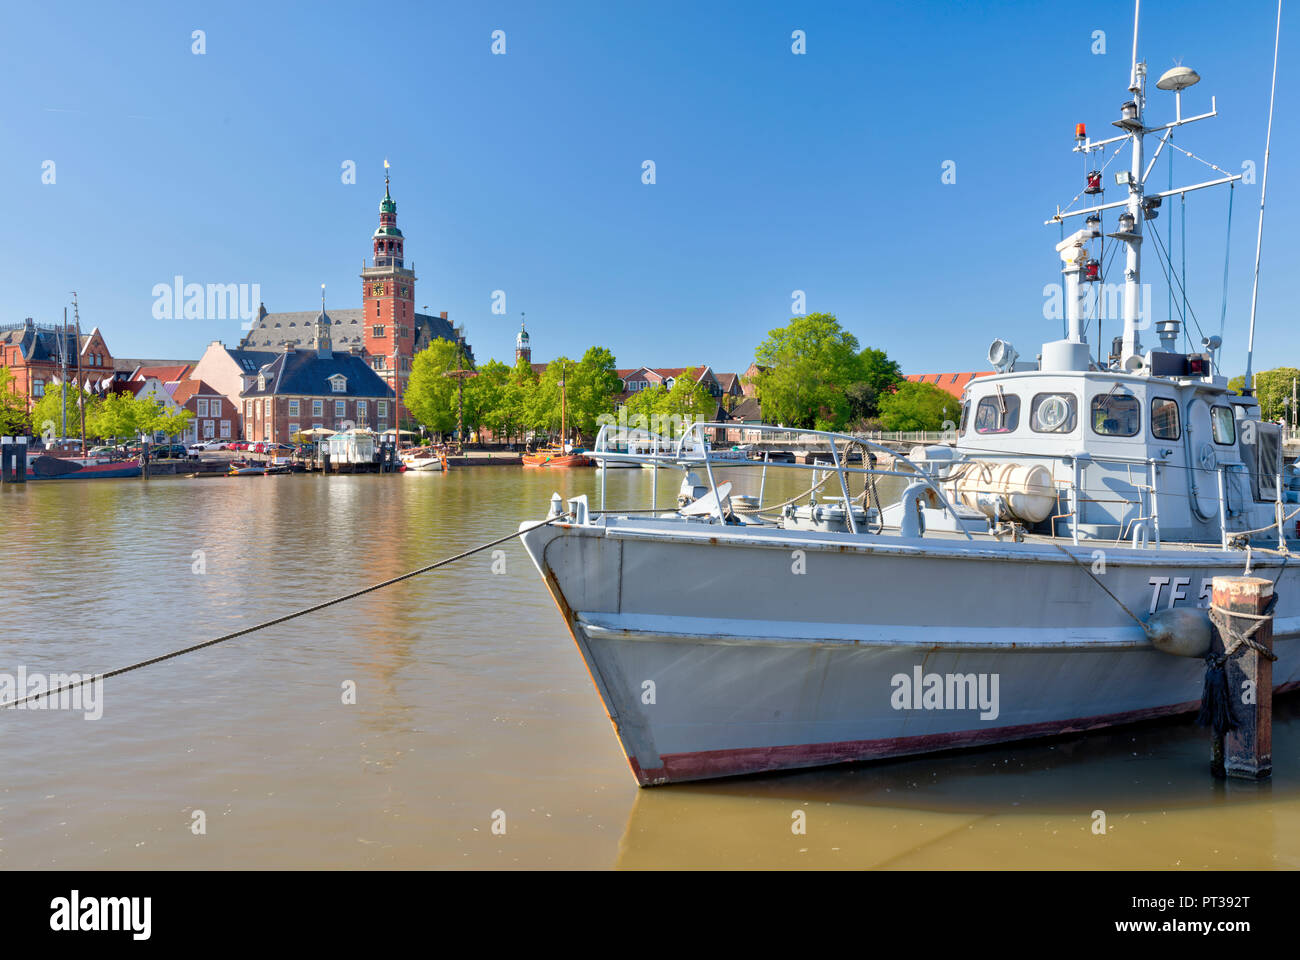 River, Leda, Town Hall Tower, Restaurant Ship, Leer, East Frisia, Lower Saxony, Germany, Europe - Stock Image